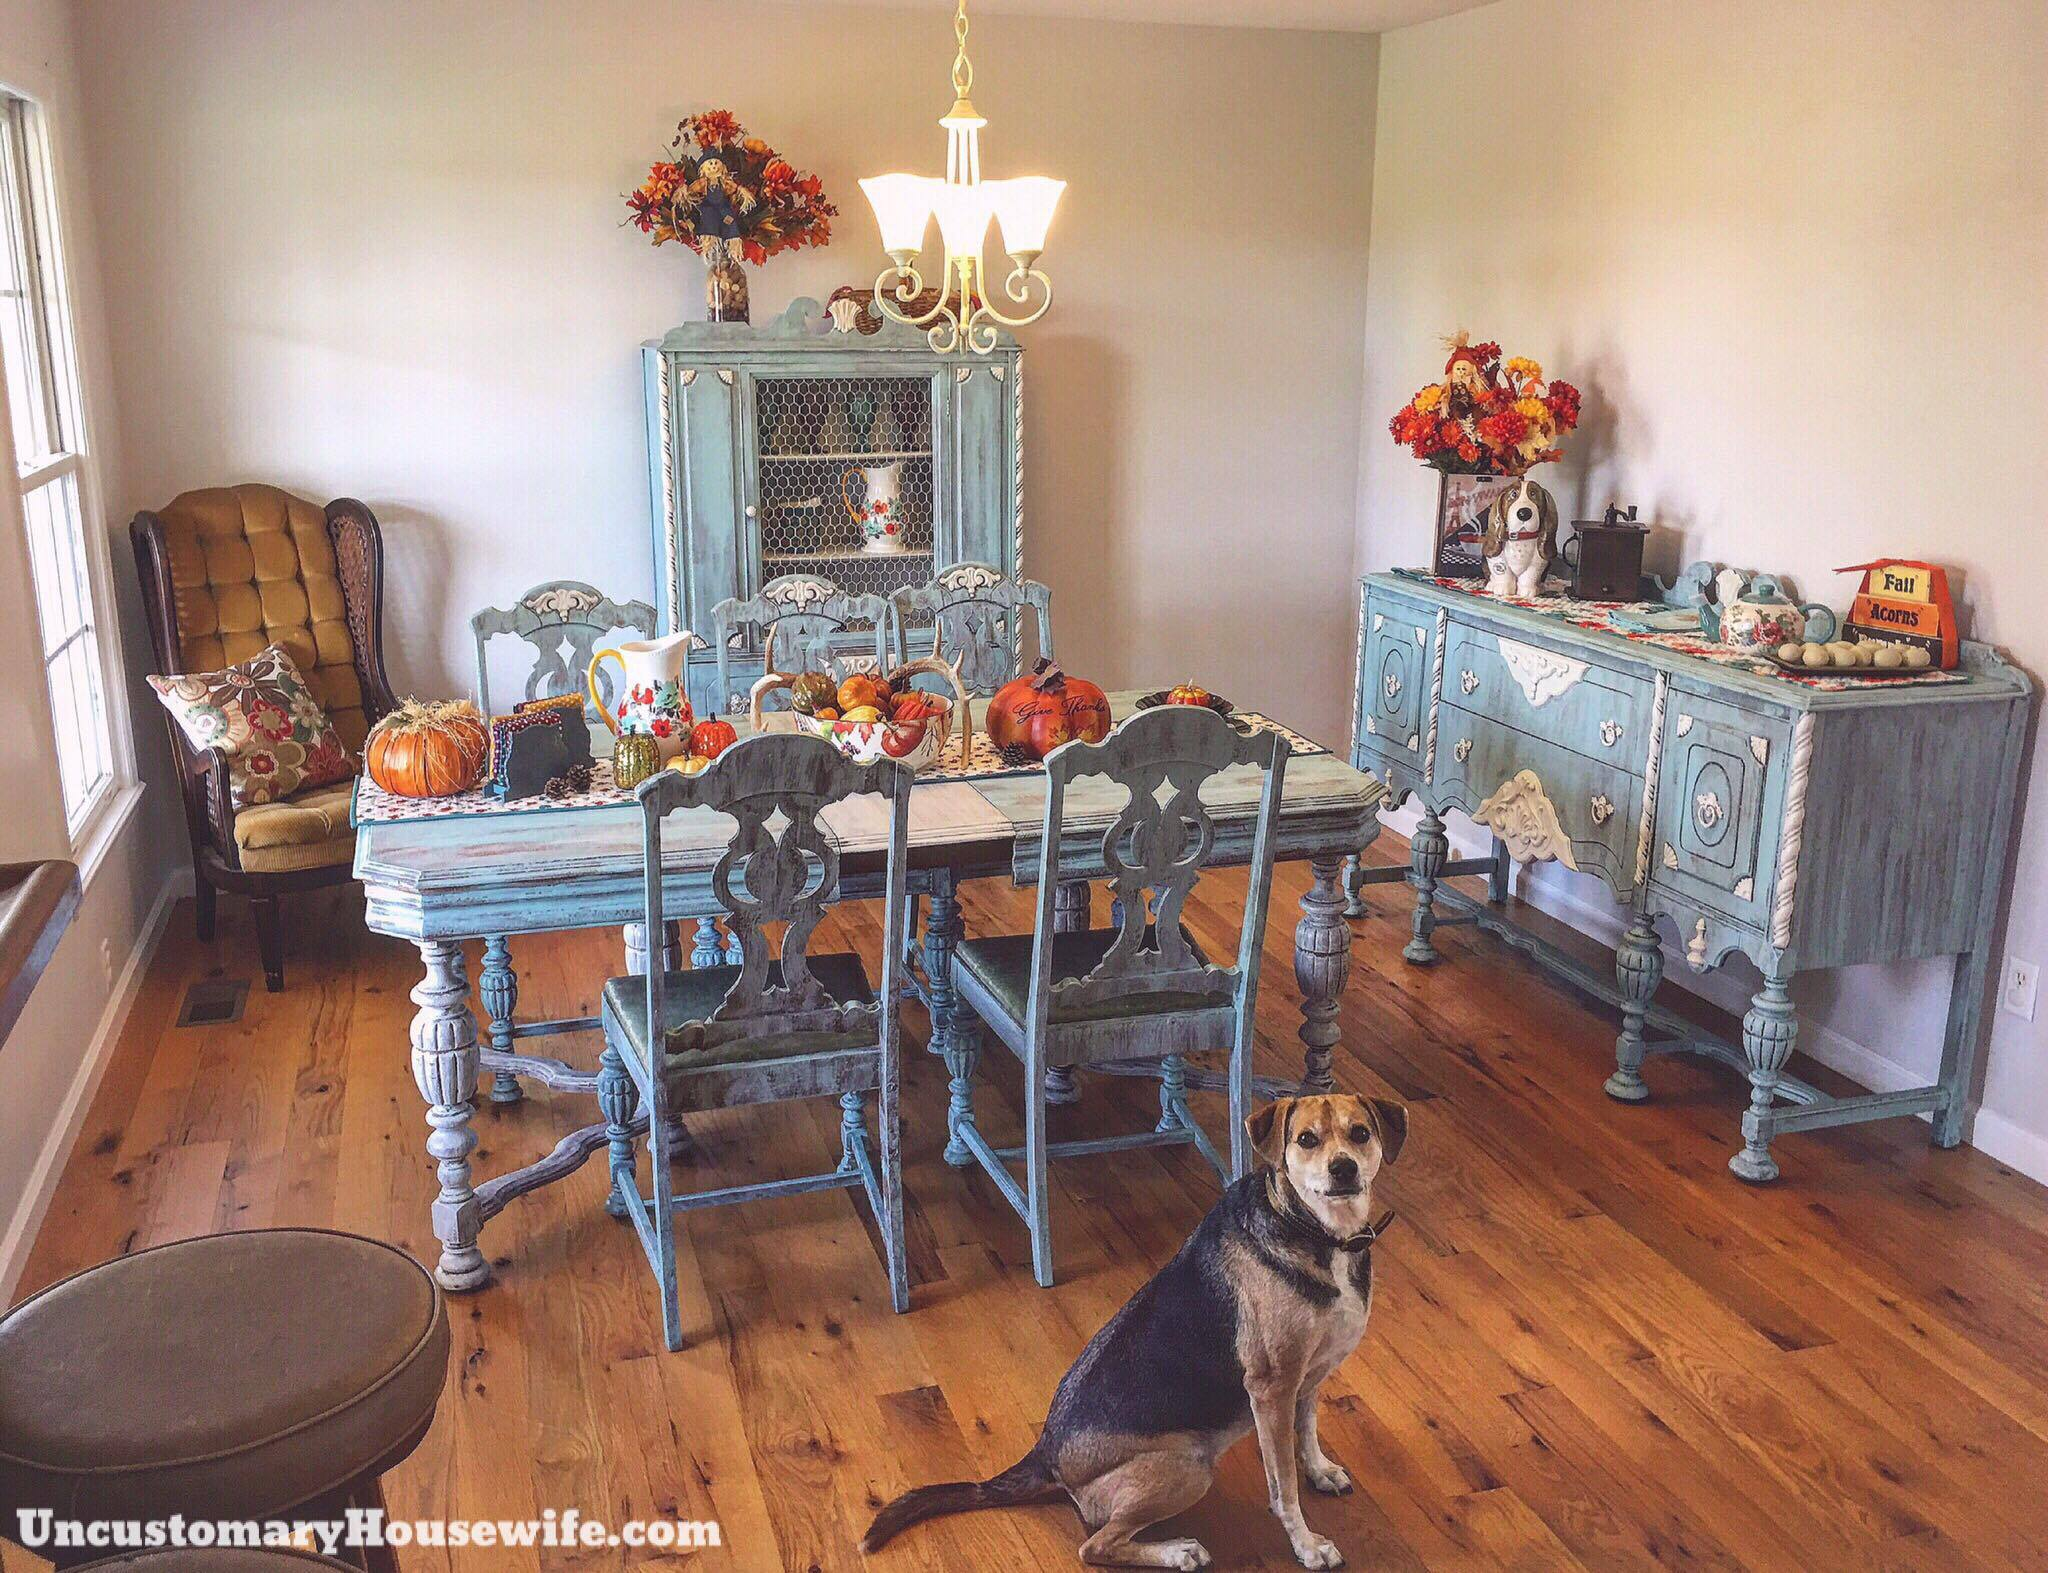 Antique Dining Room With Dog Uncustomary Housewife